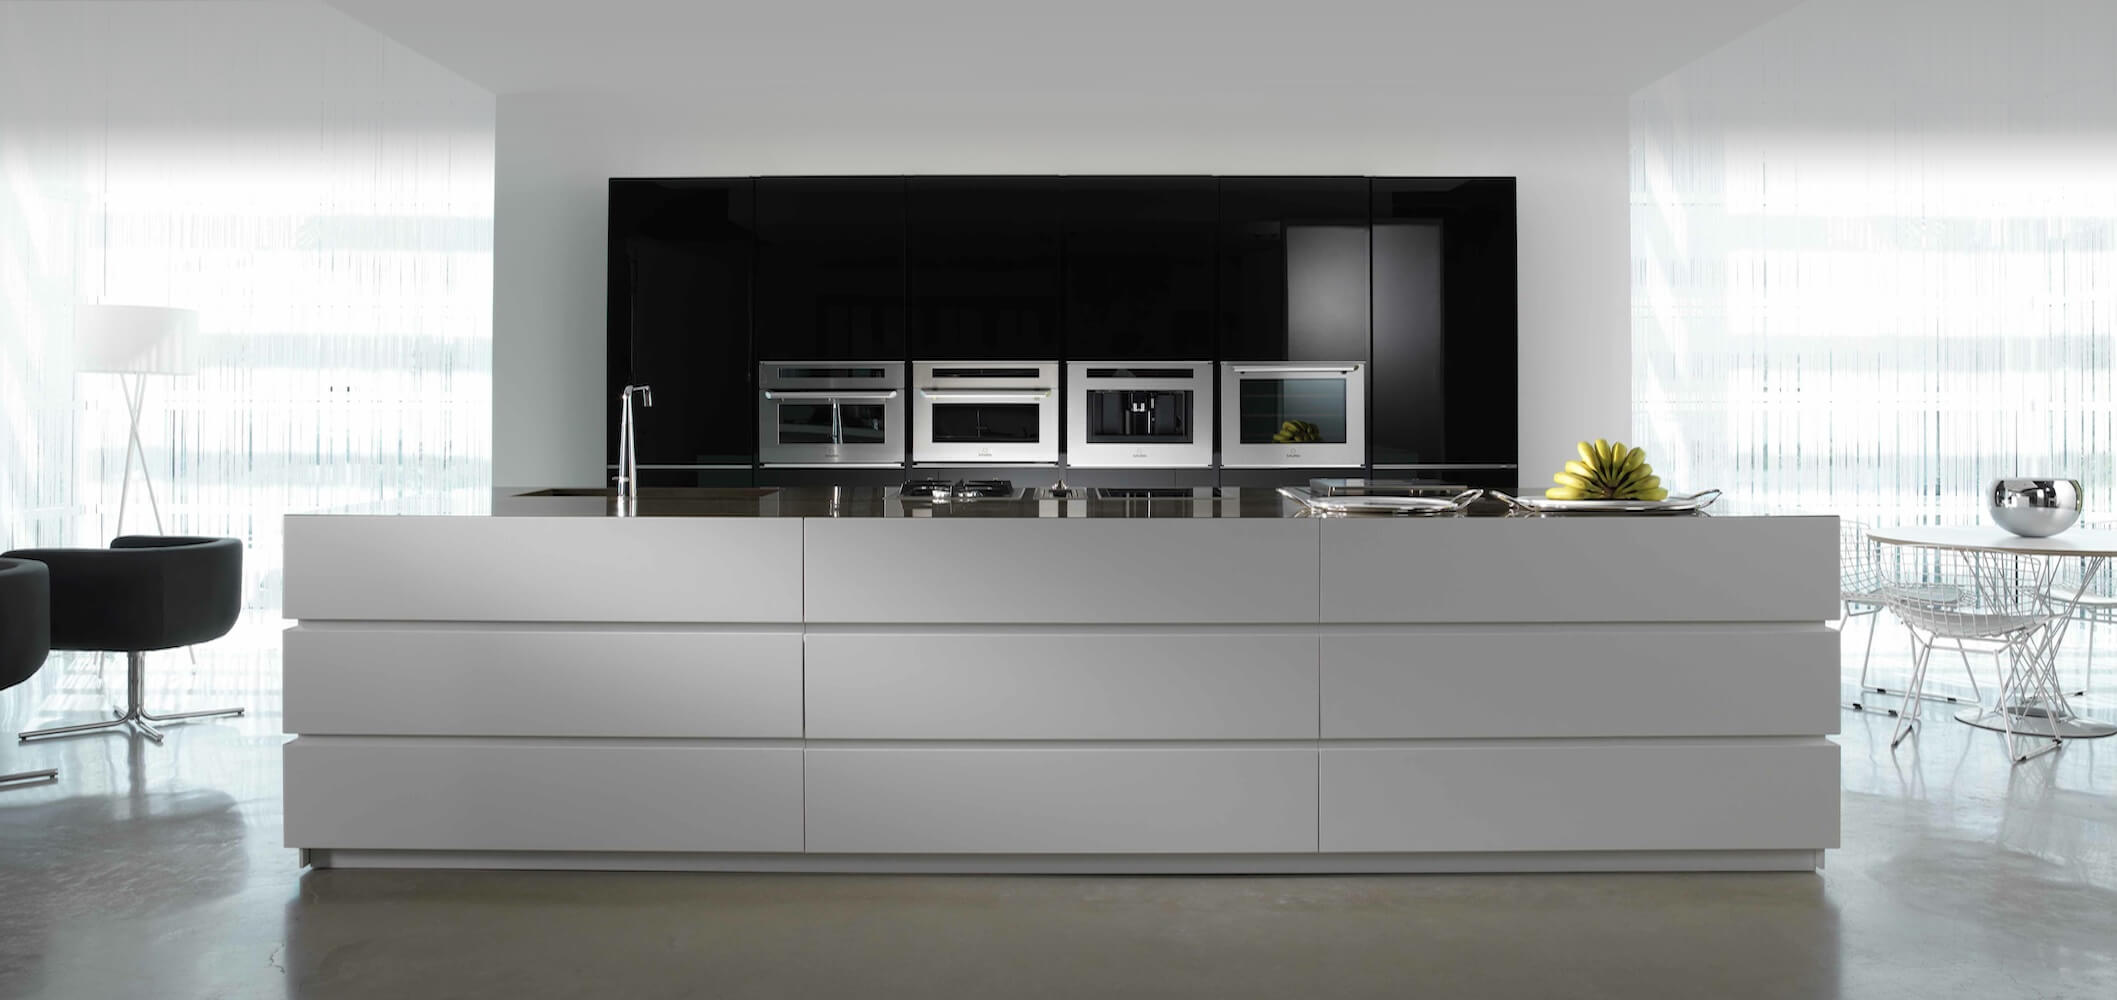 Modern Kitchen Background 20 state-of-the-art modern kitchen designsreeva design